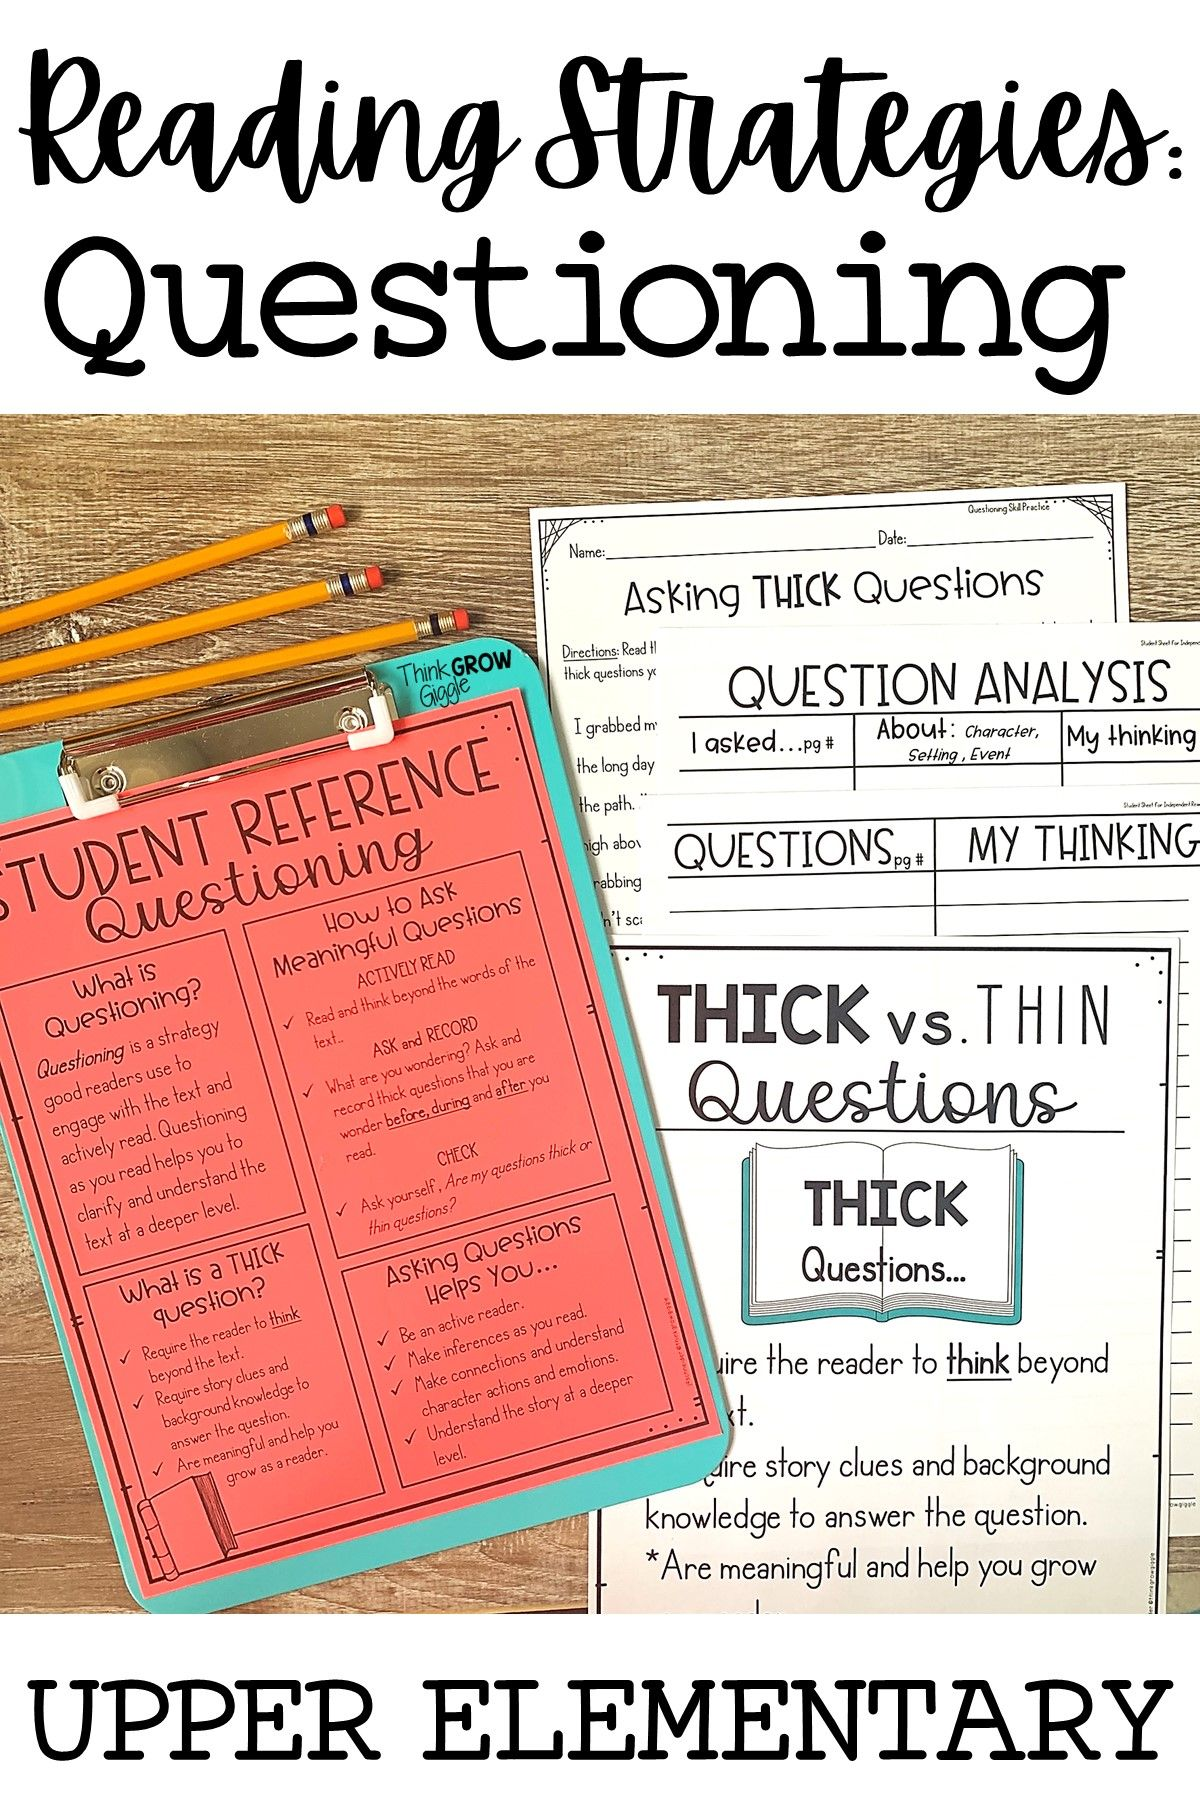 Questioning Reading Strategy